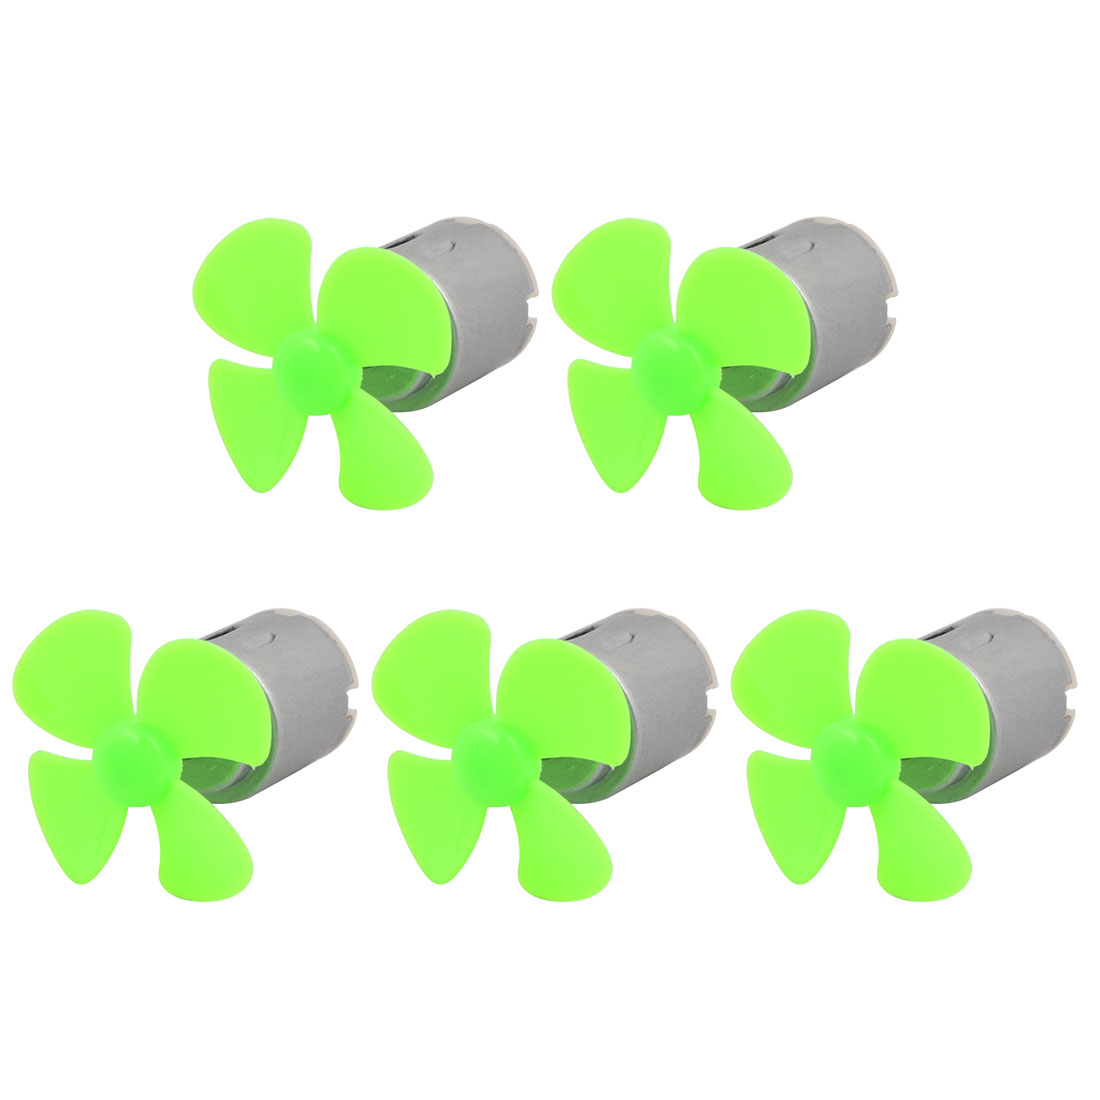 5pcs DC 3V 0.13A 14000RPM Strong Force Motor 4 Vanes 40mm Green Propeller for RC Aircraft